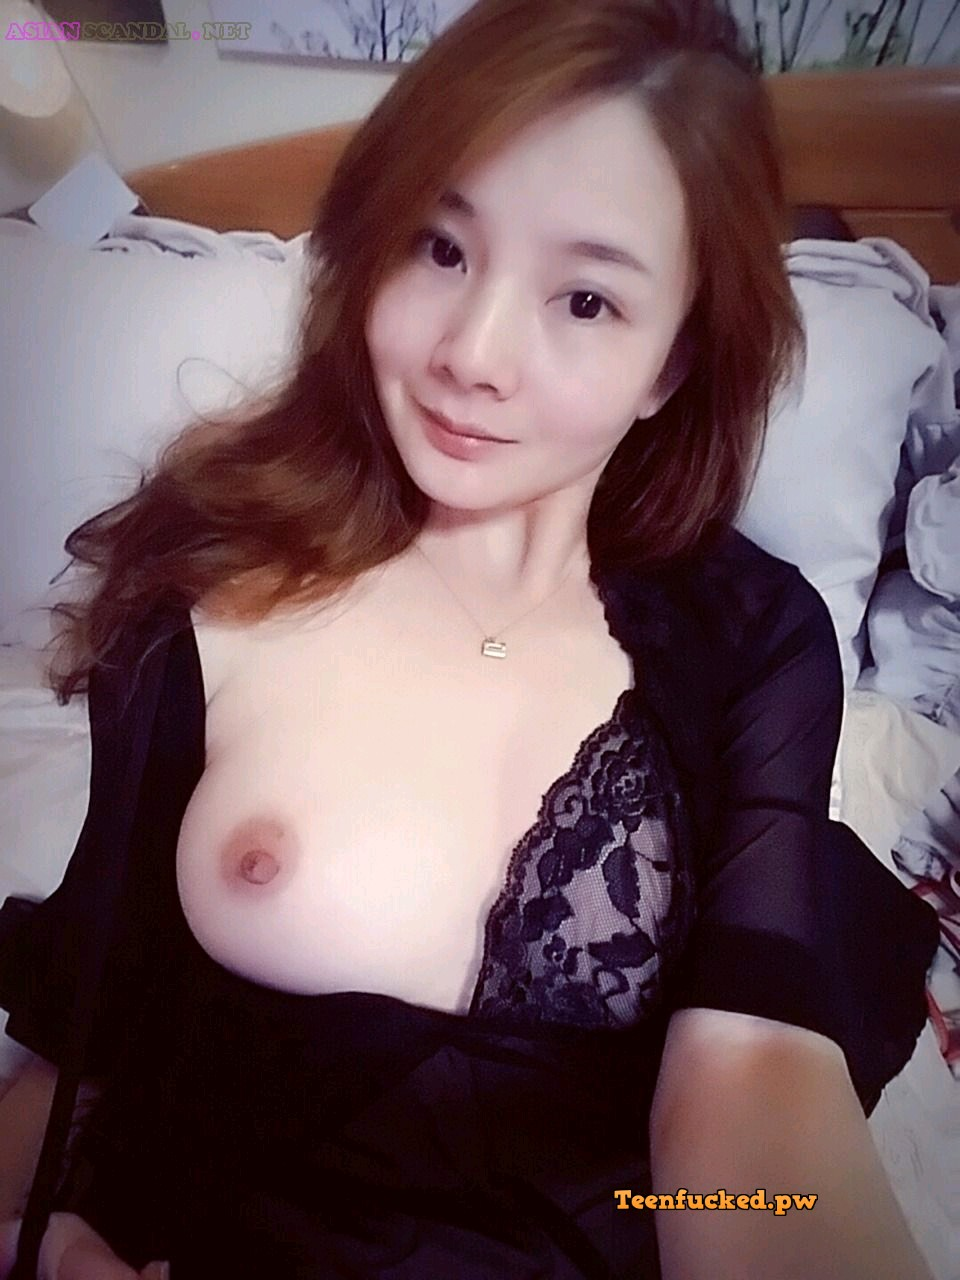 lQlosYPHgh8 wm - Cute asian girl selfie big tits very hot 2020